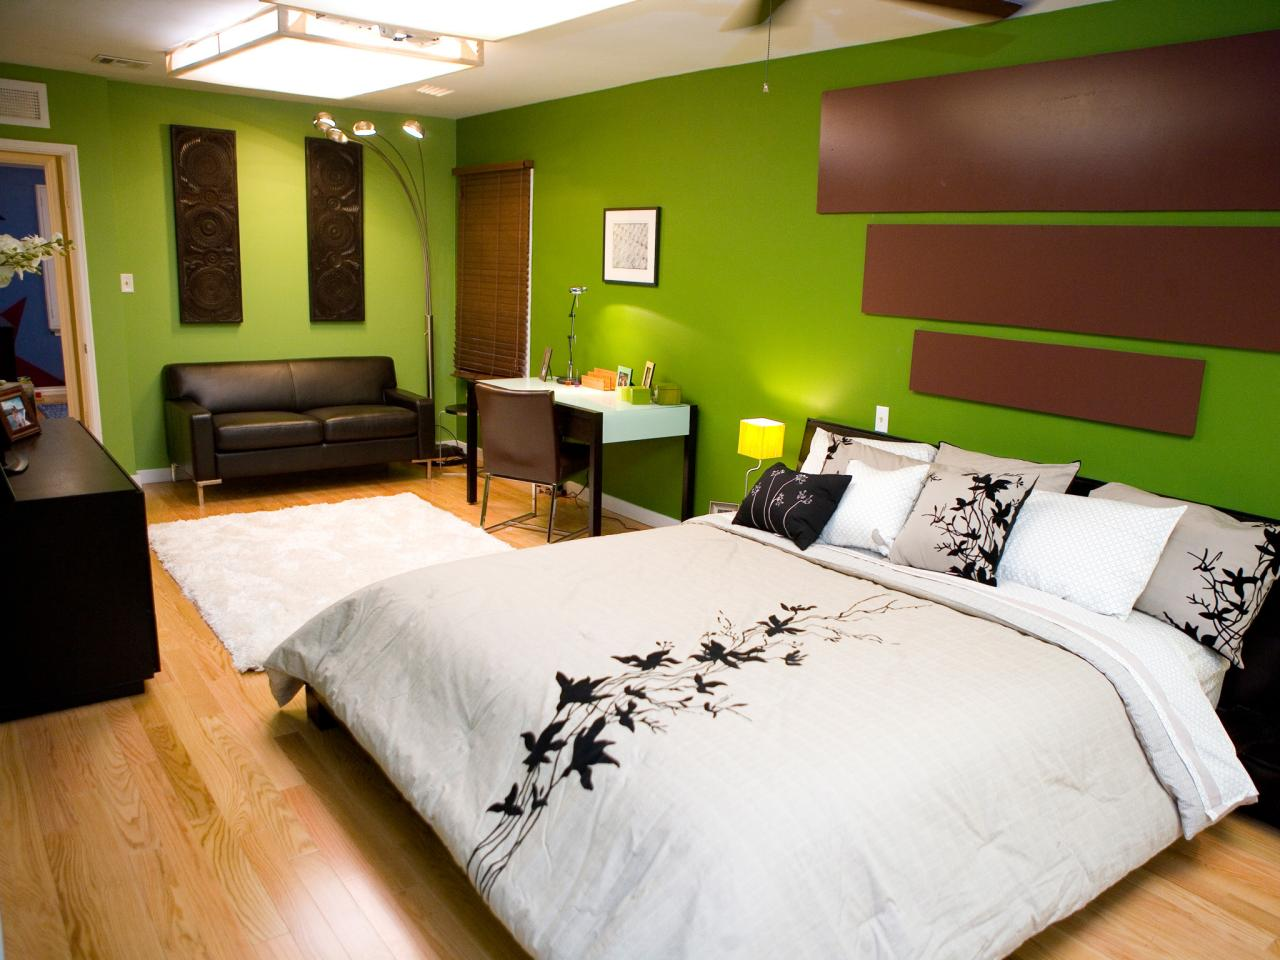 Paint Bedroom Ideas bedroom paint color ideas: pictures & options | hgtv